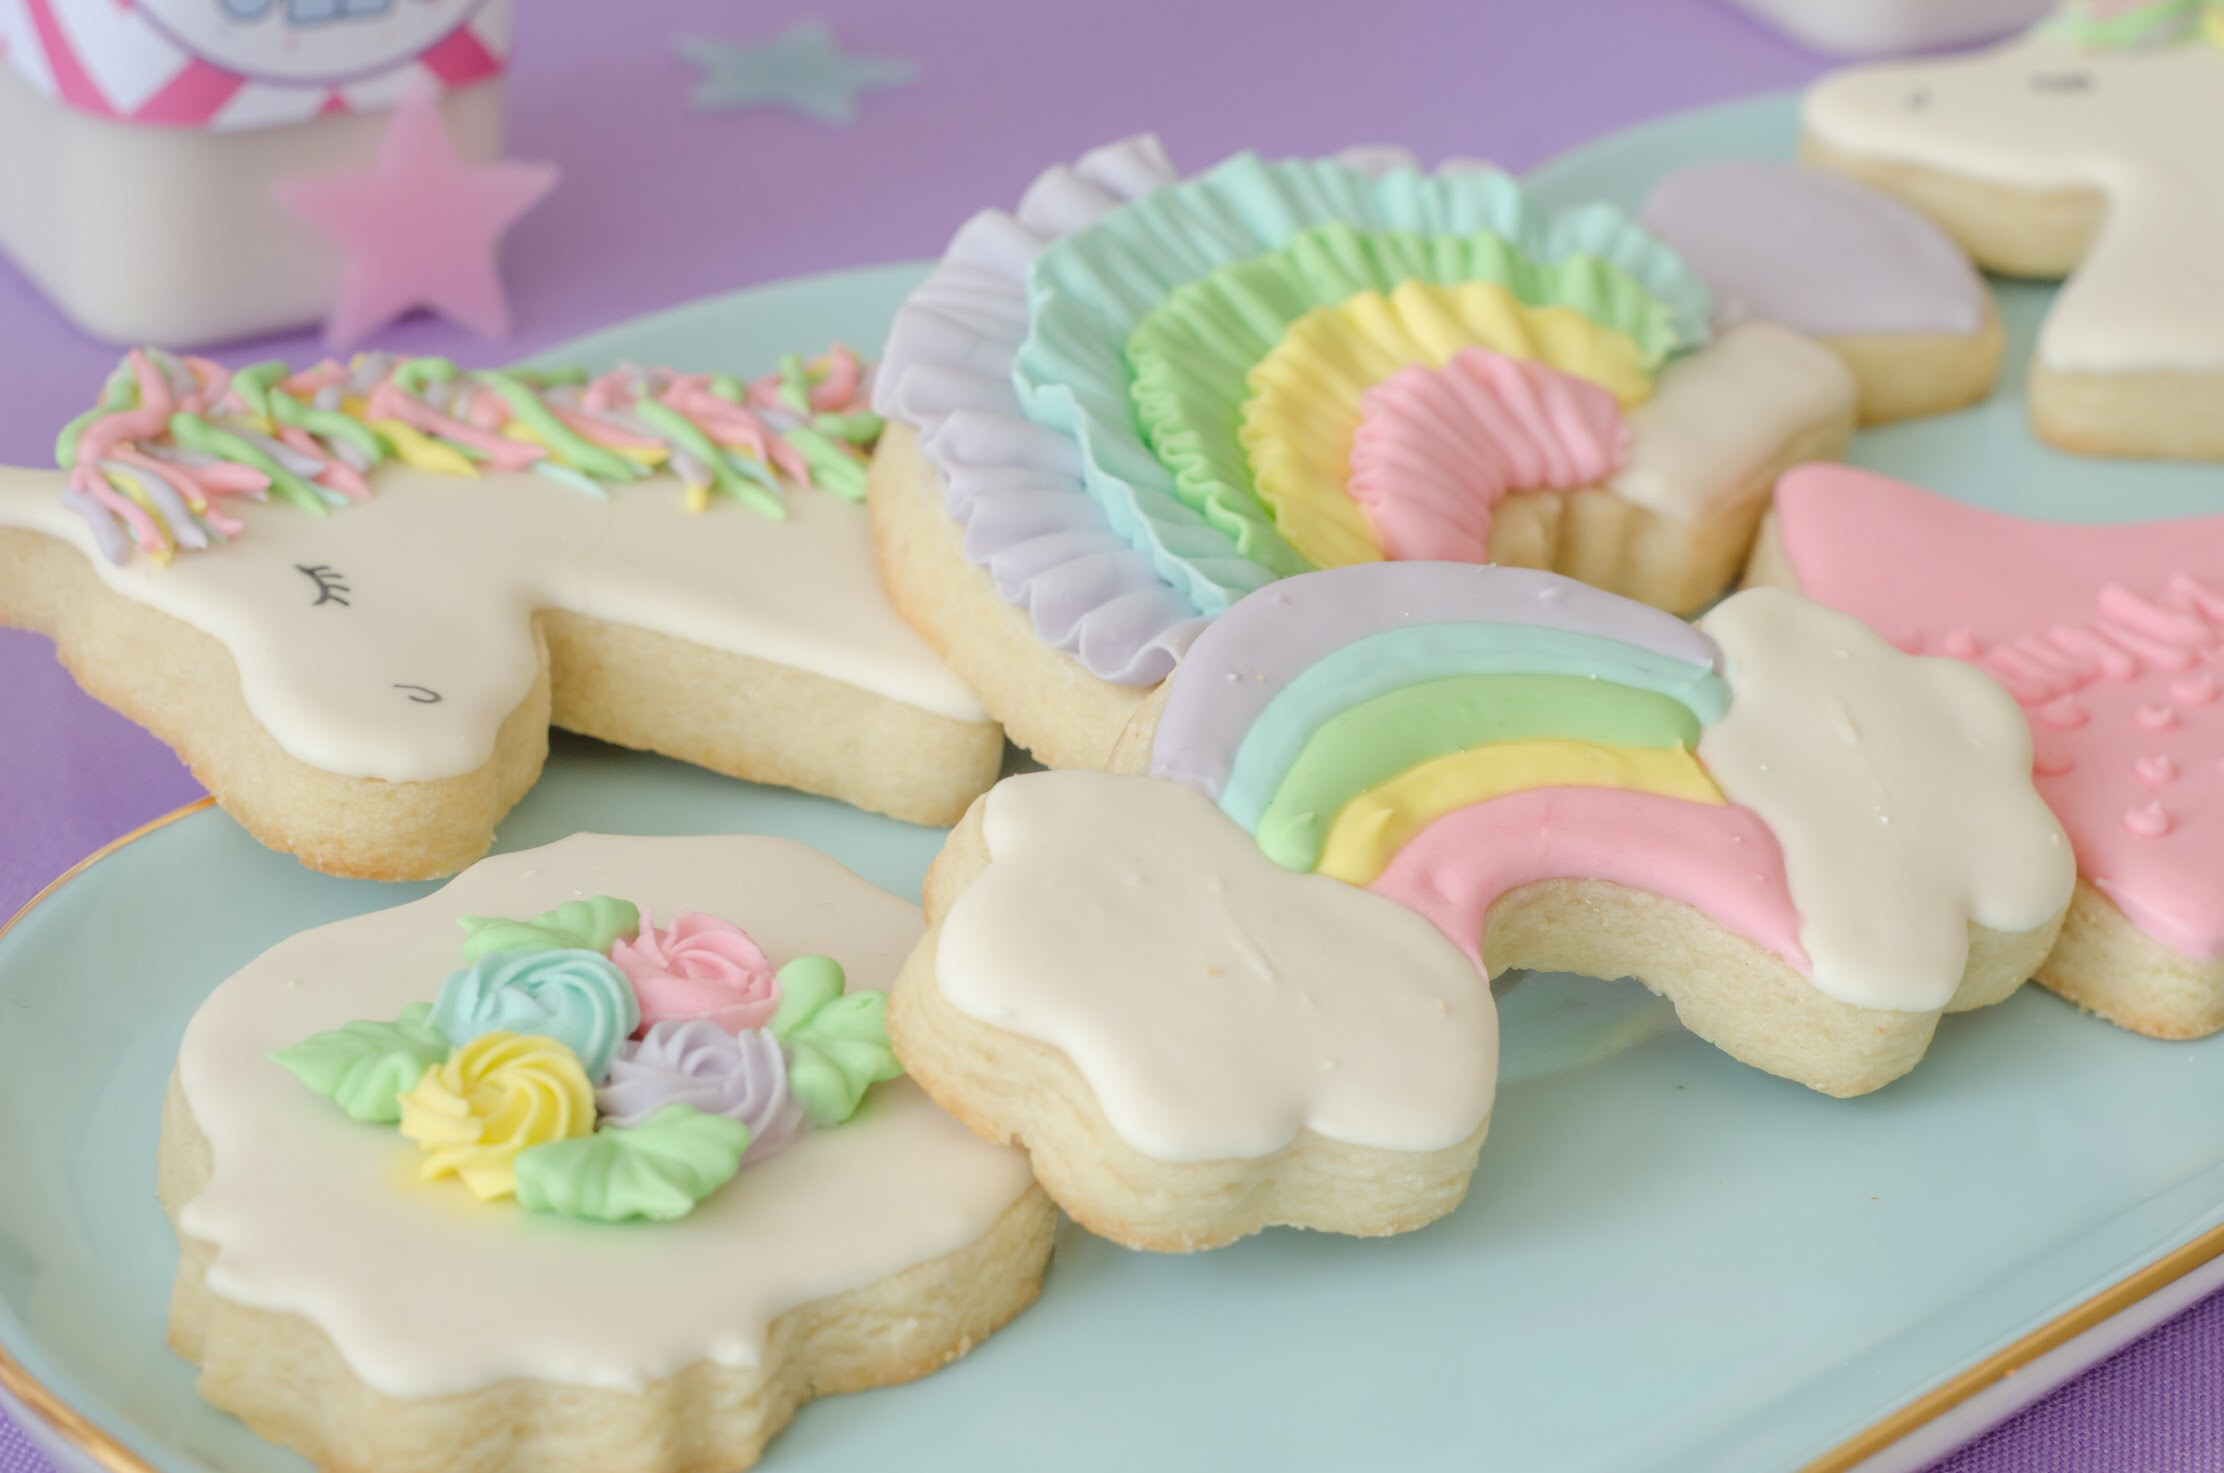 How sweet are these unicorn cookies? The whole party by Mint Event Design is a-may-zing! See all the party details to create your own unicorn themed birthday party at www.minteventdesign.com #unicornparty #birthdayparty #birthdaypartyideas #pastelrainbow #birthdaycookies